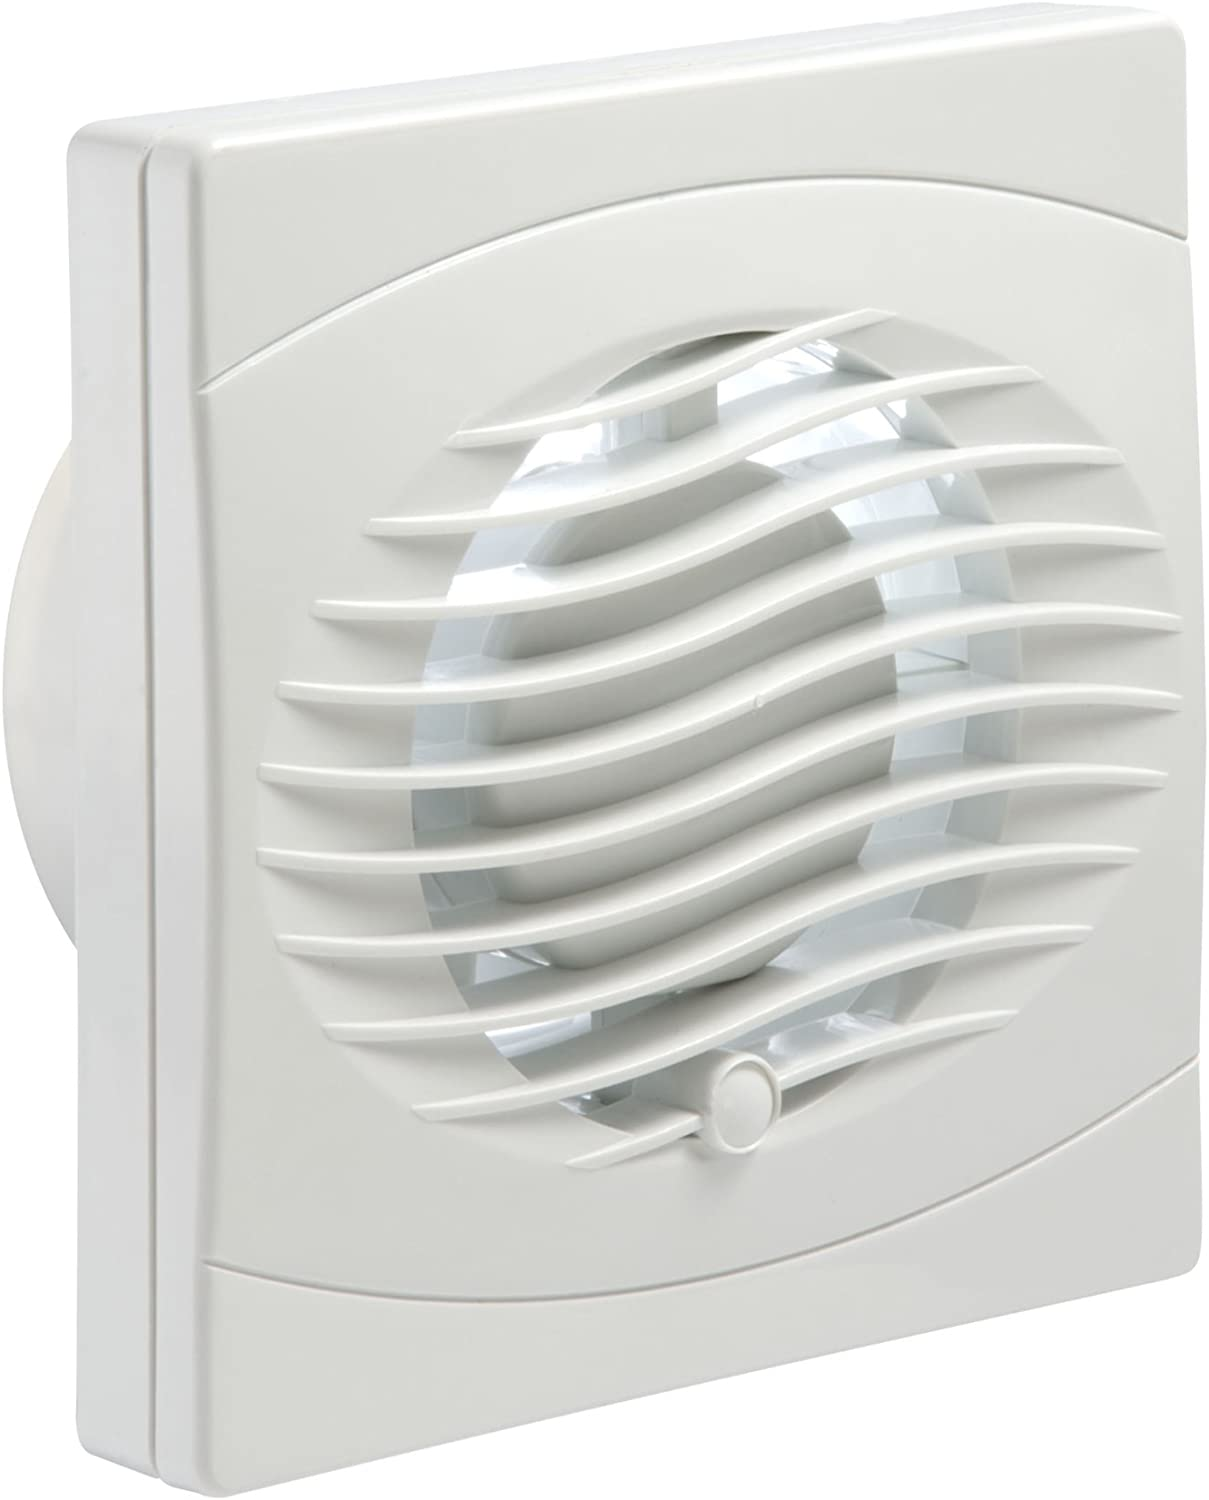 Manrose Extractor Fan No Timer BVF100S 4 inch//100 mm